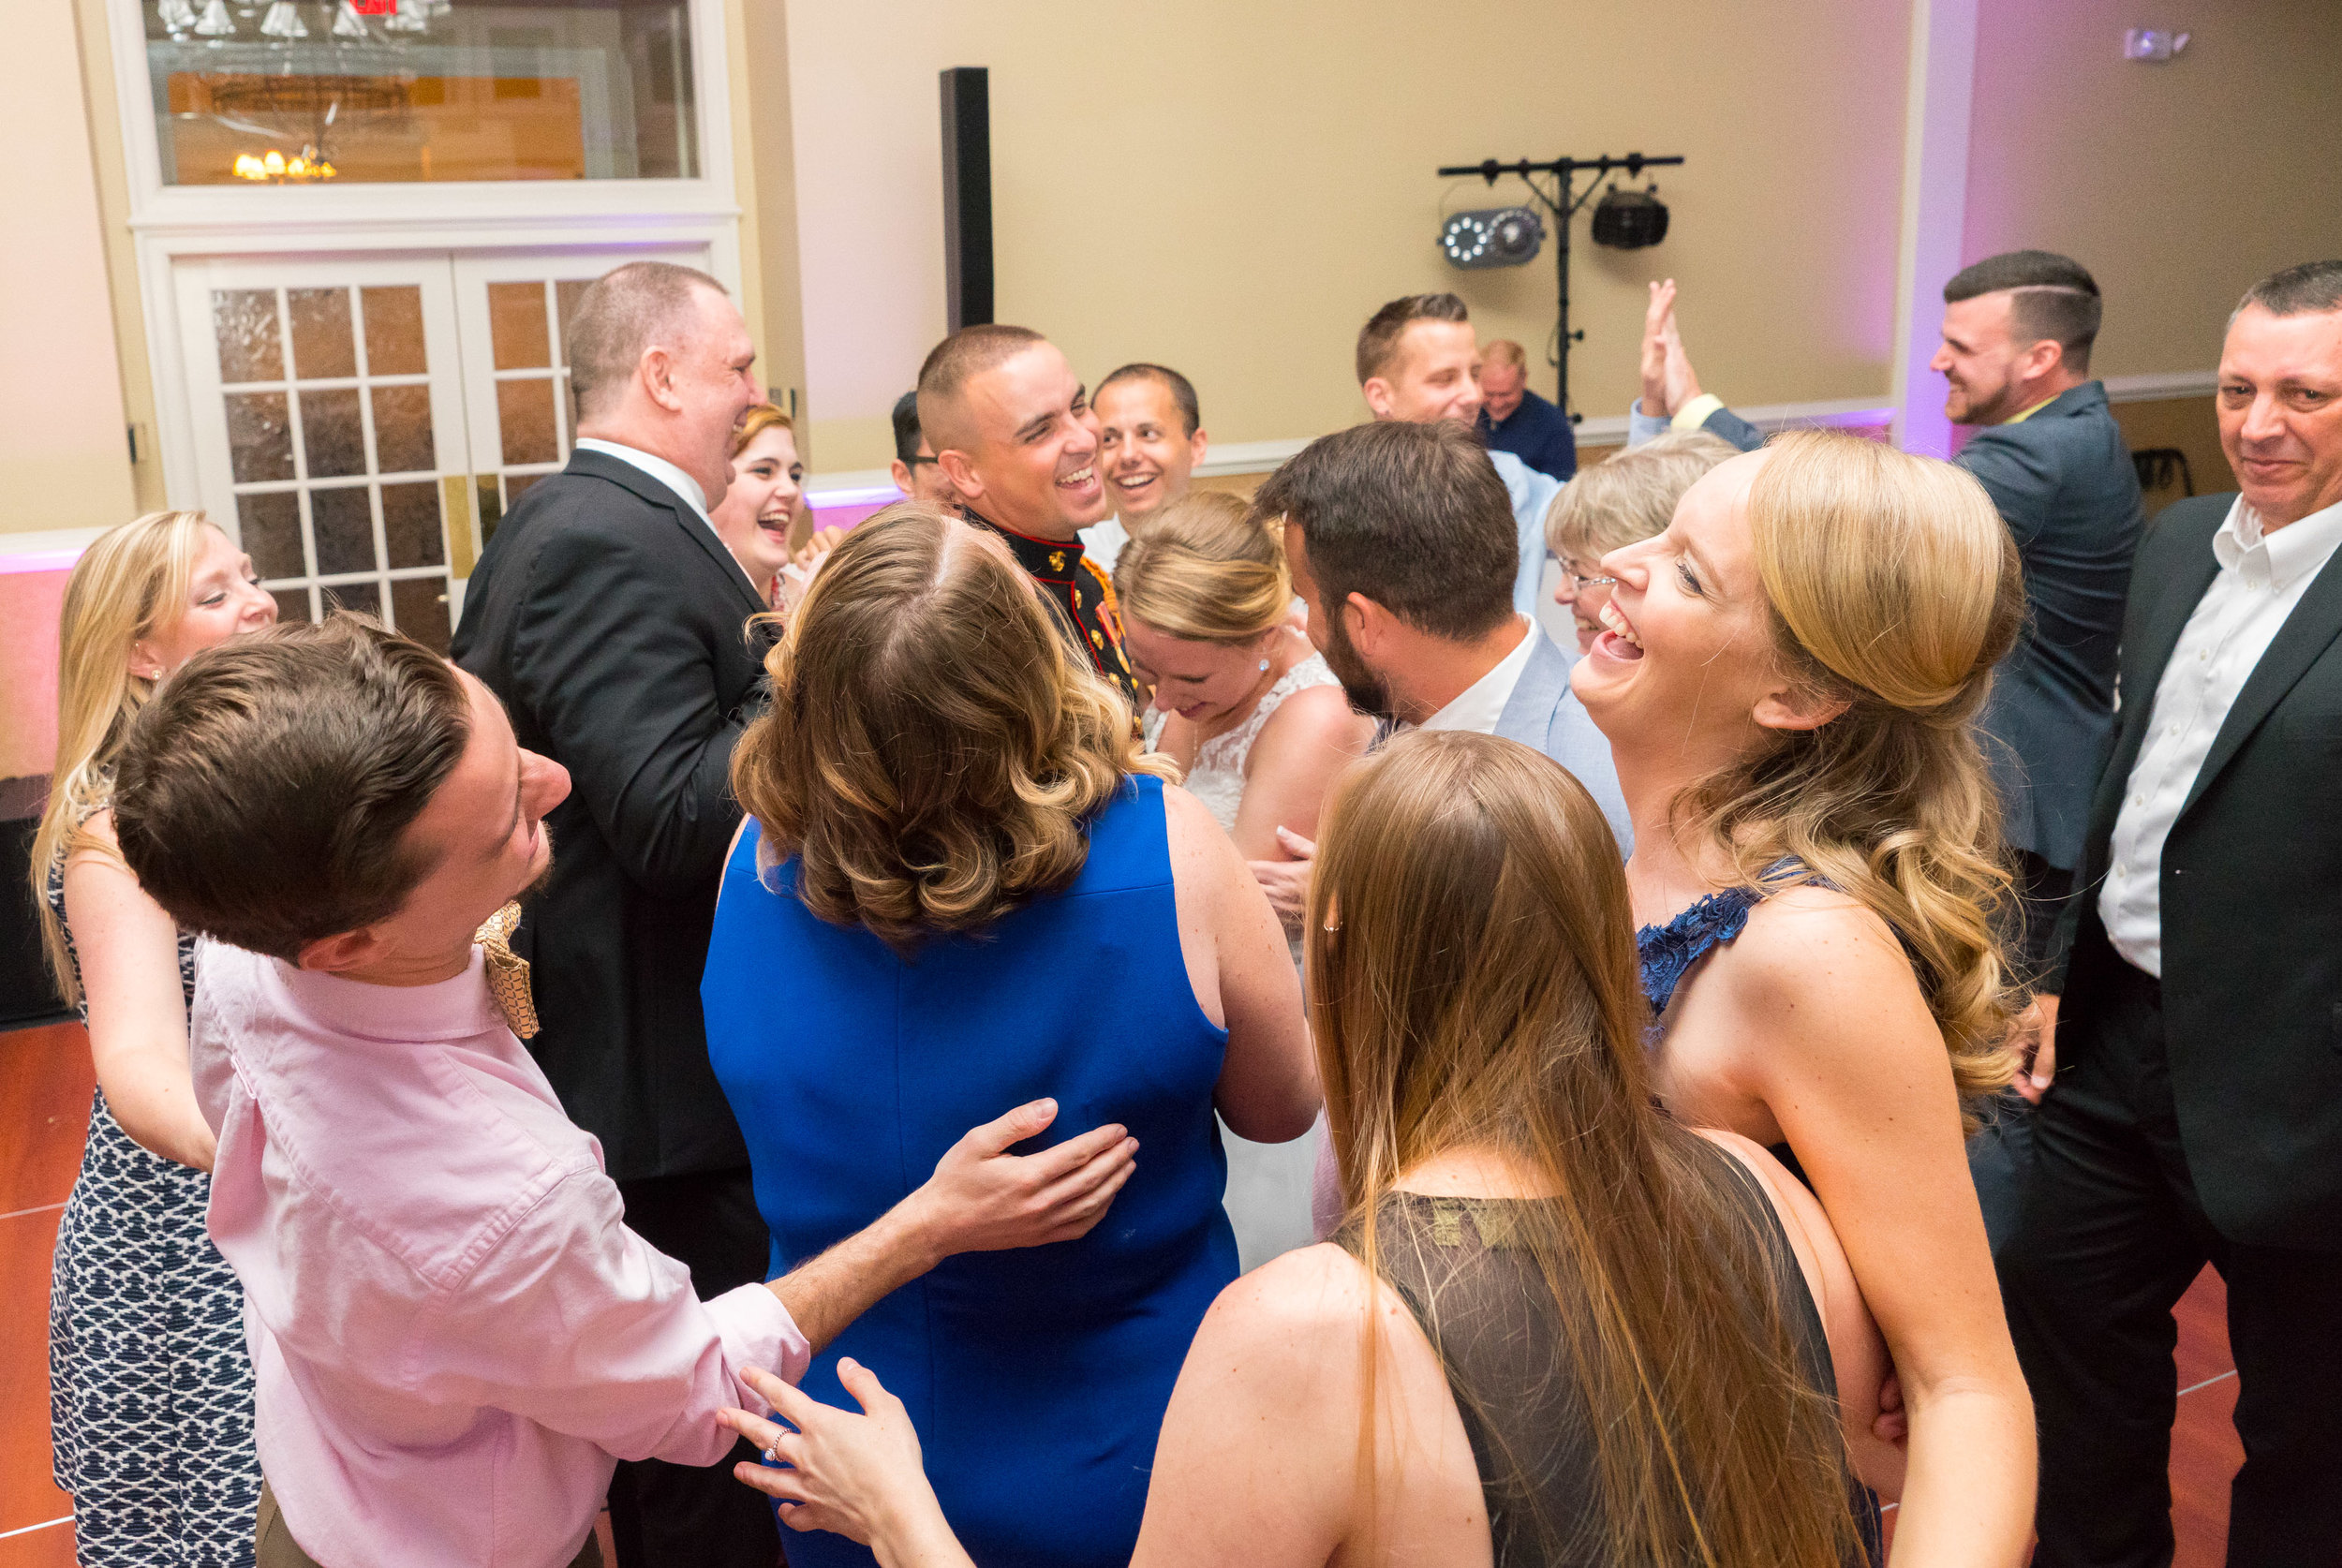 Candid wedding reception photography by jessica nazarova in maryland and virginia